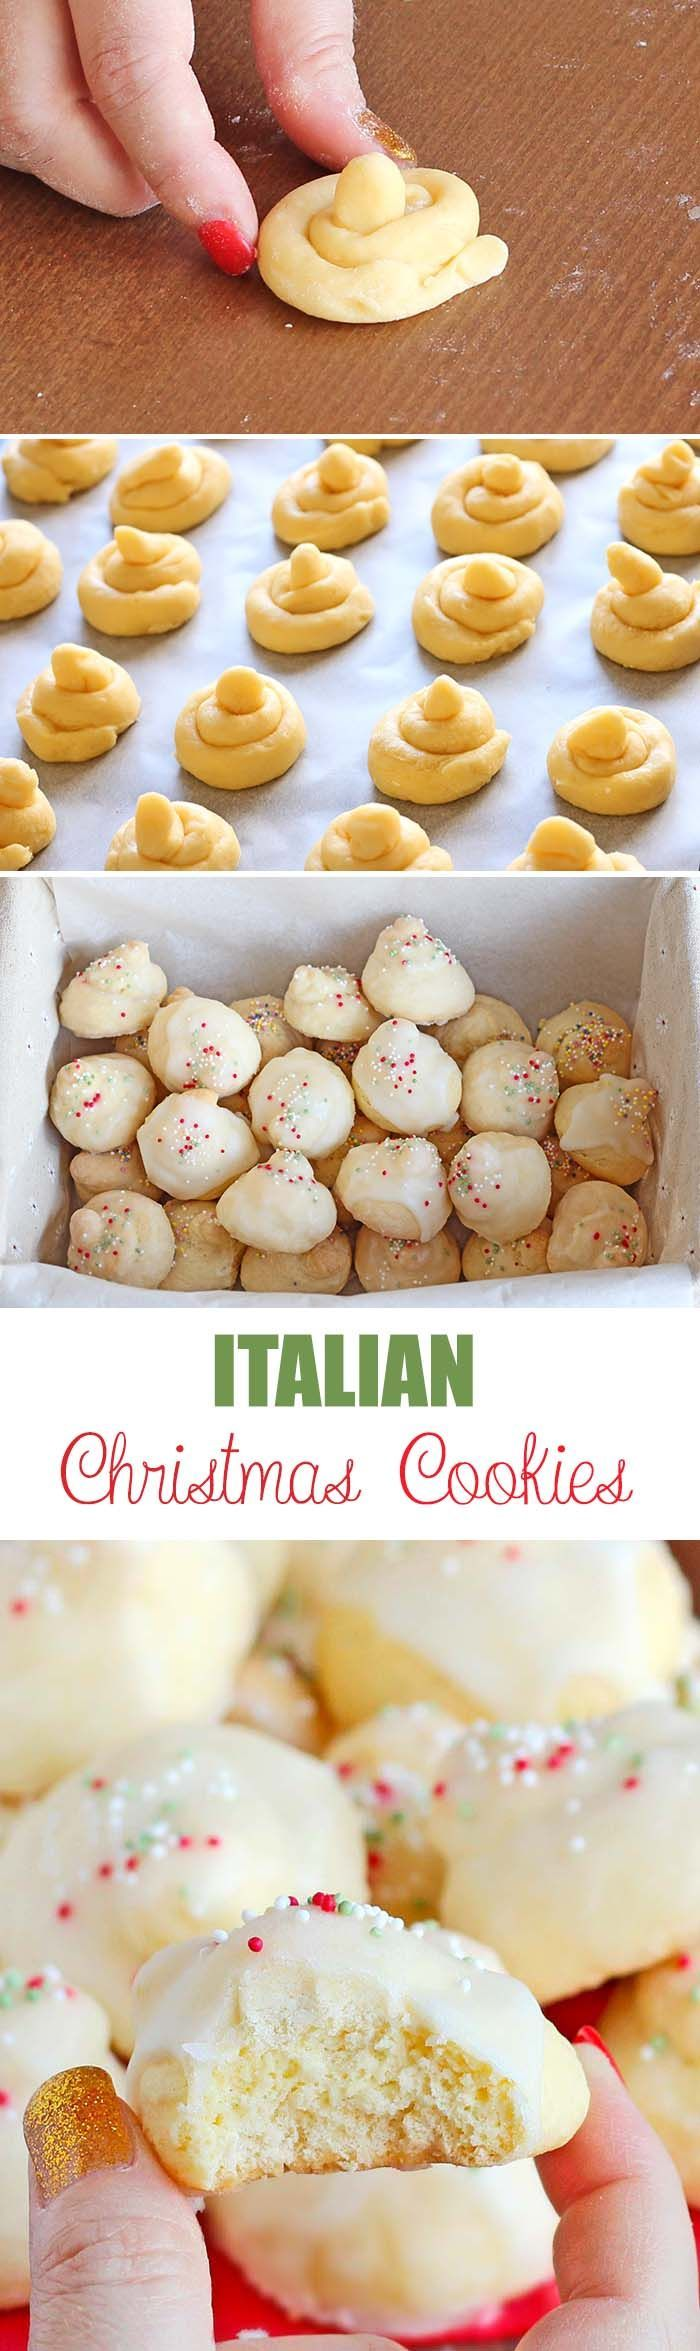 These Italian Christmas cookies have become a favorite Christmas recipe at our house. Try them and see for yourself how delicious they are!